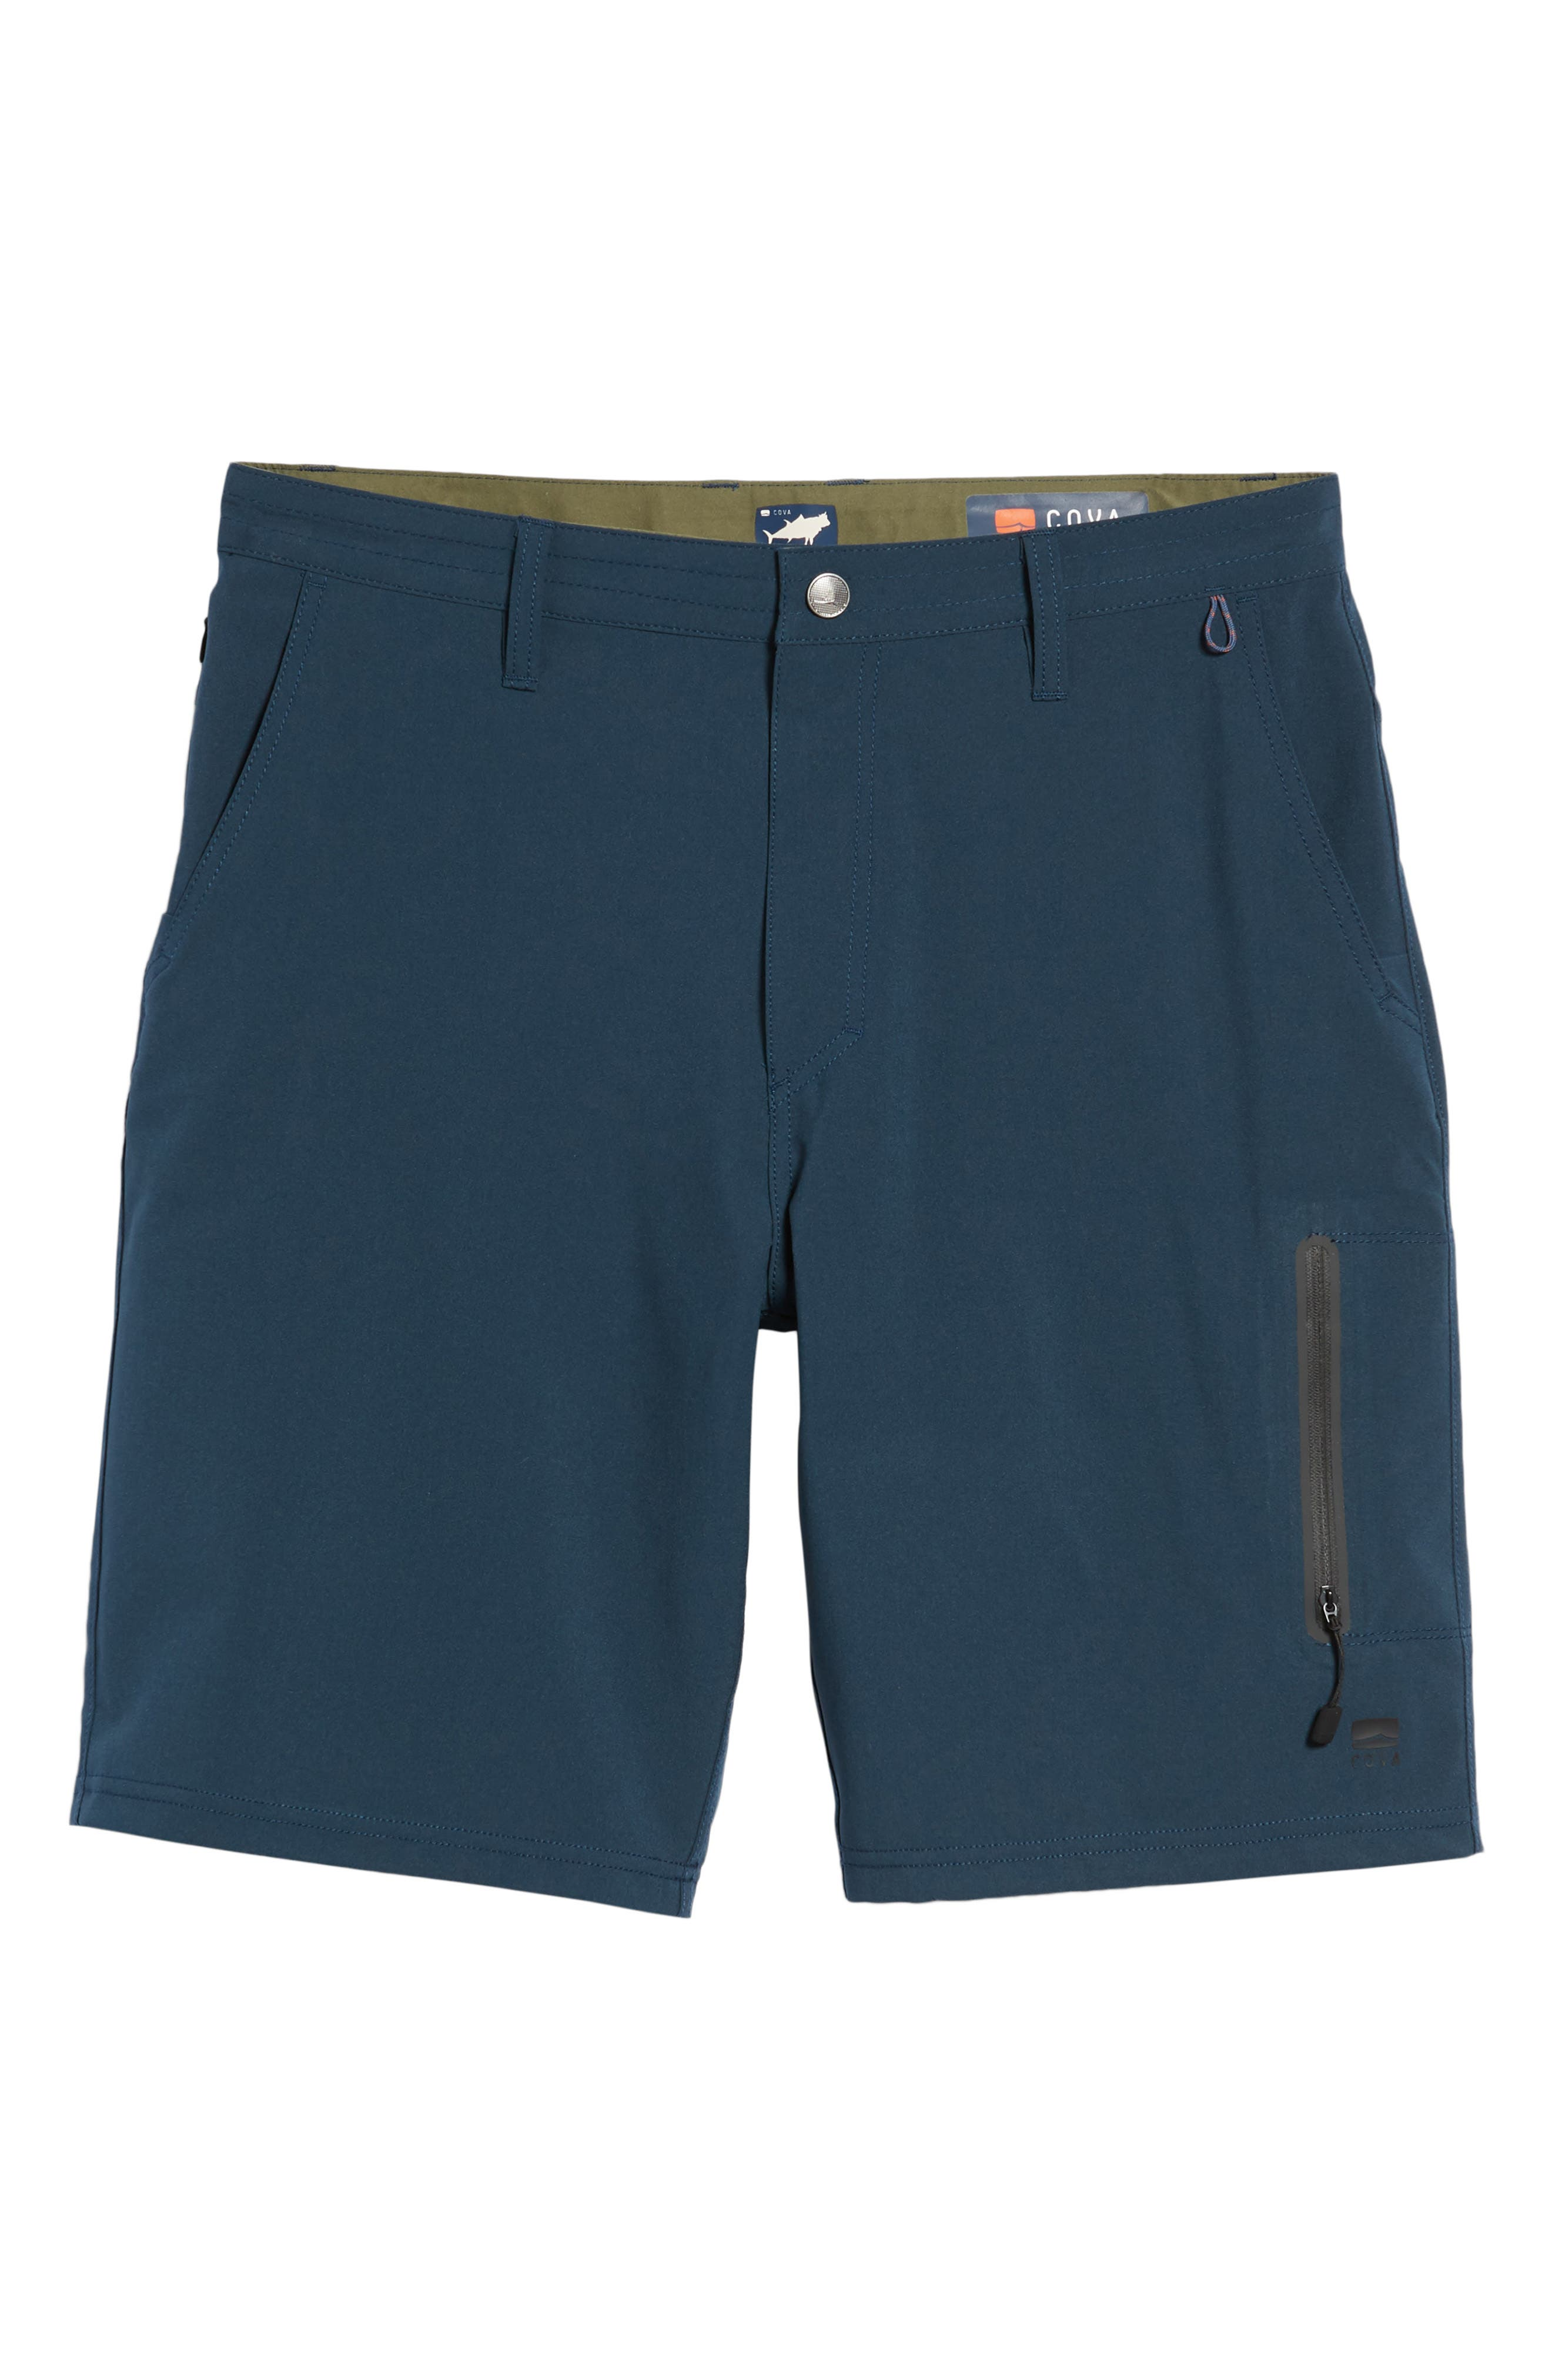 Pipeline Hybrid Shorts,                             Alternate thumbnail 6, color,                             Lake Blue